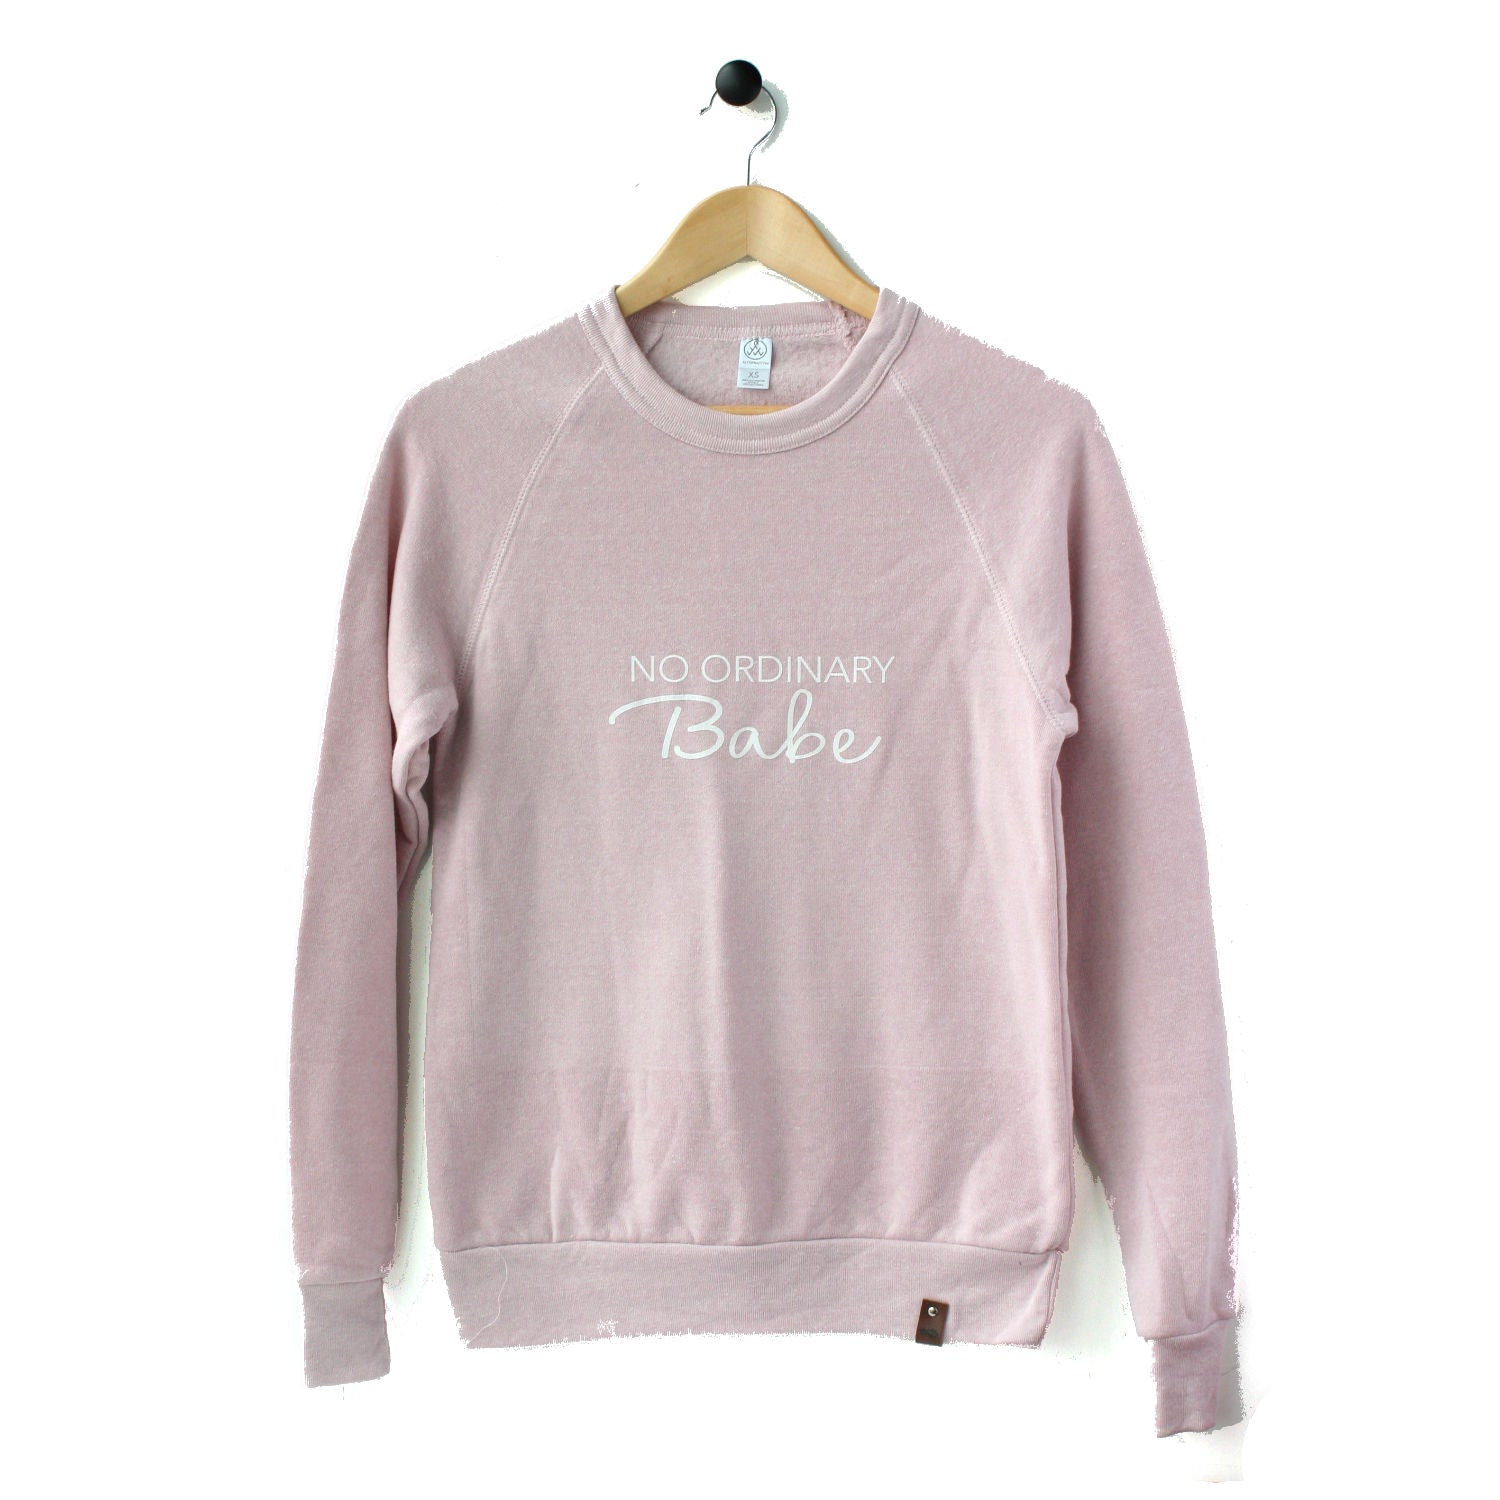 Charlie Crew Sweater - No Ordinary Babe - Multi Colours